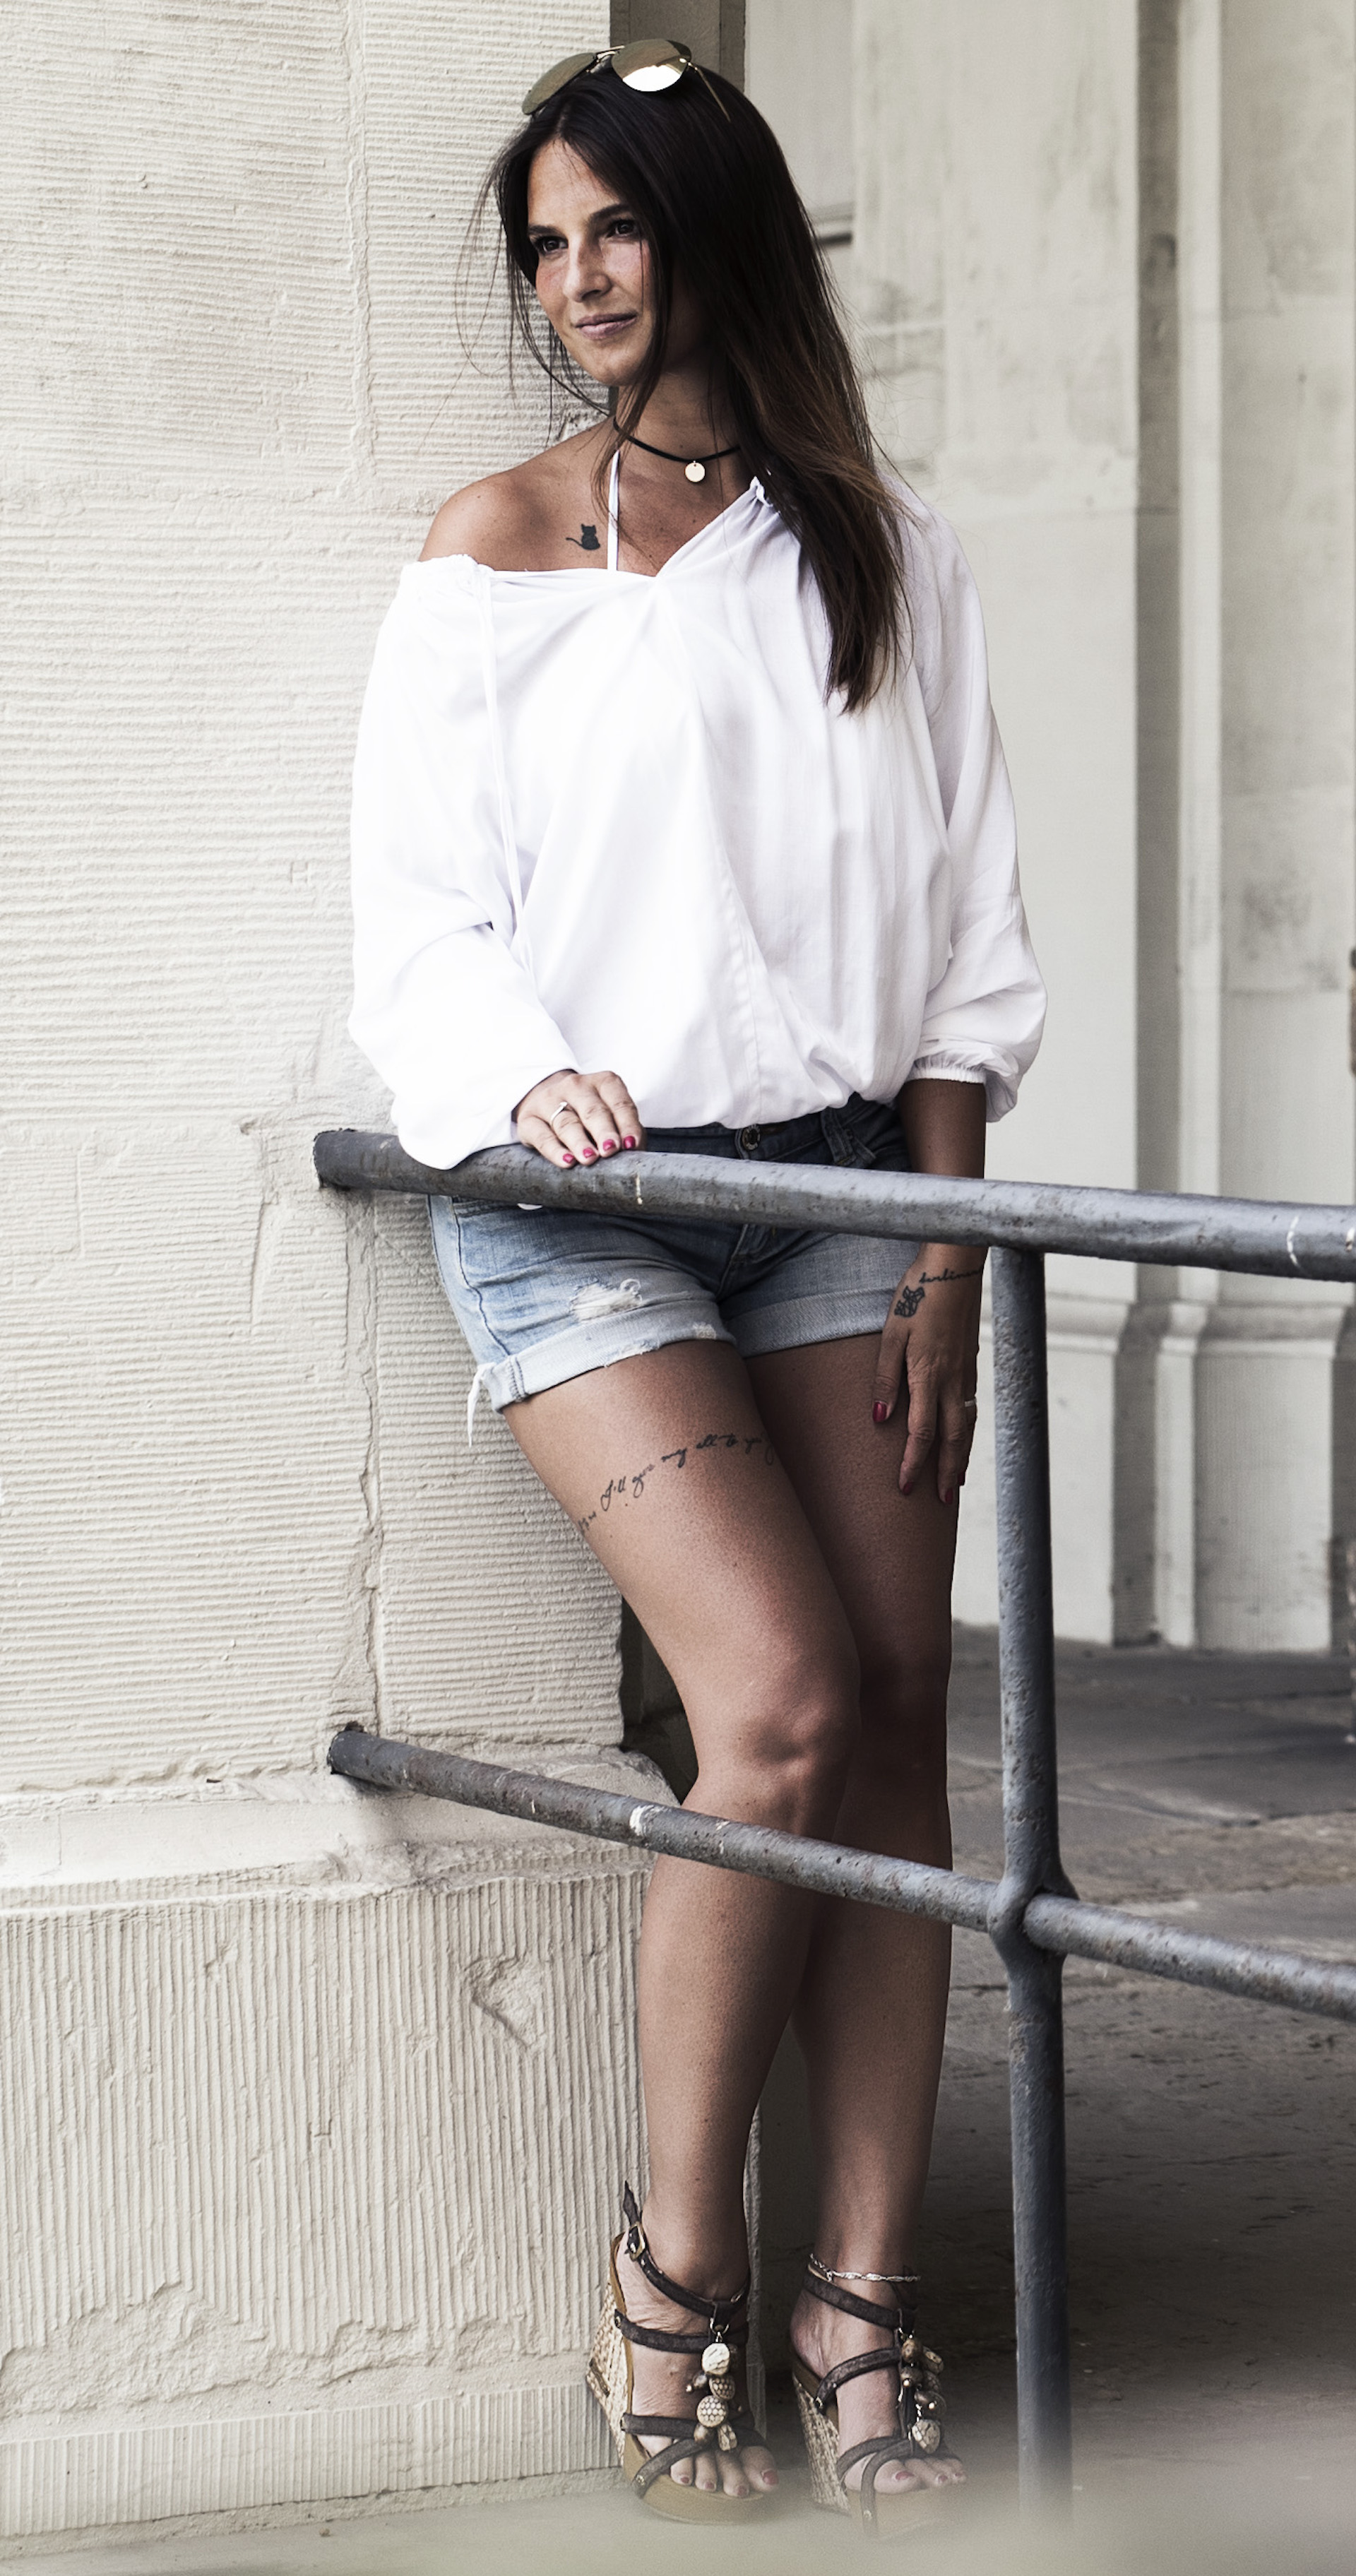 Shorts-Bluse-sommerlook